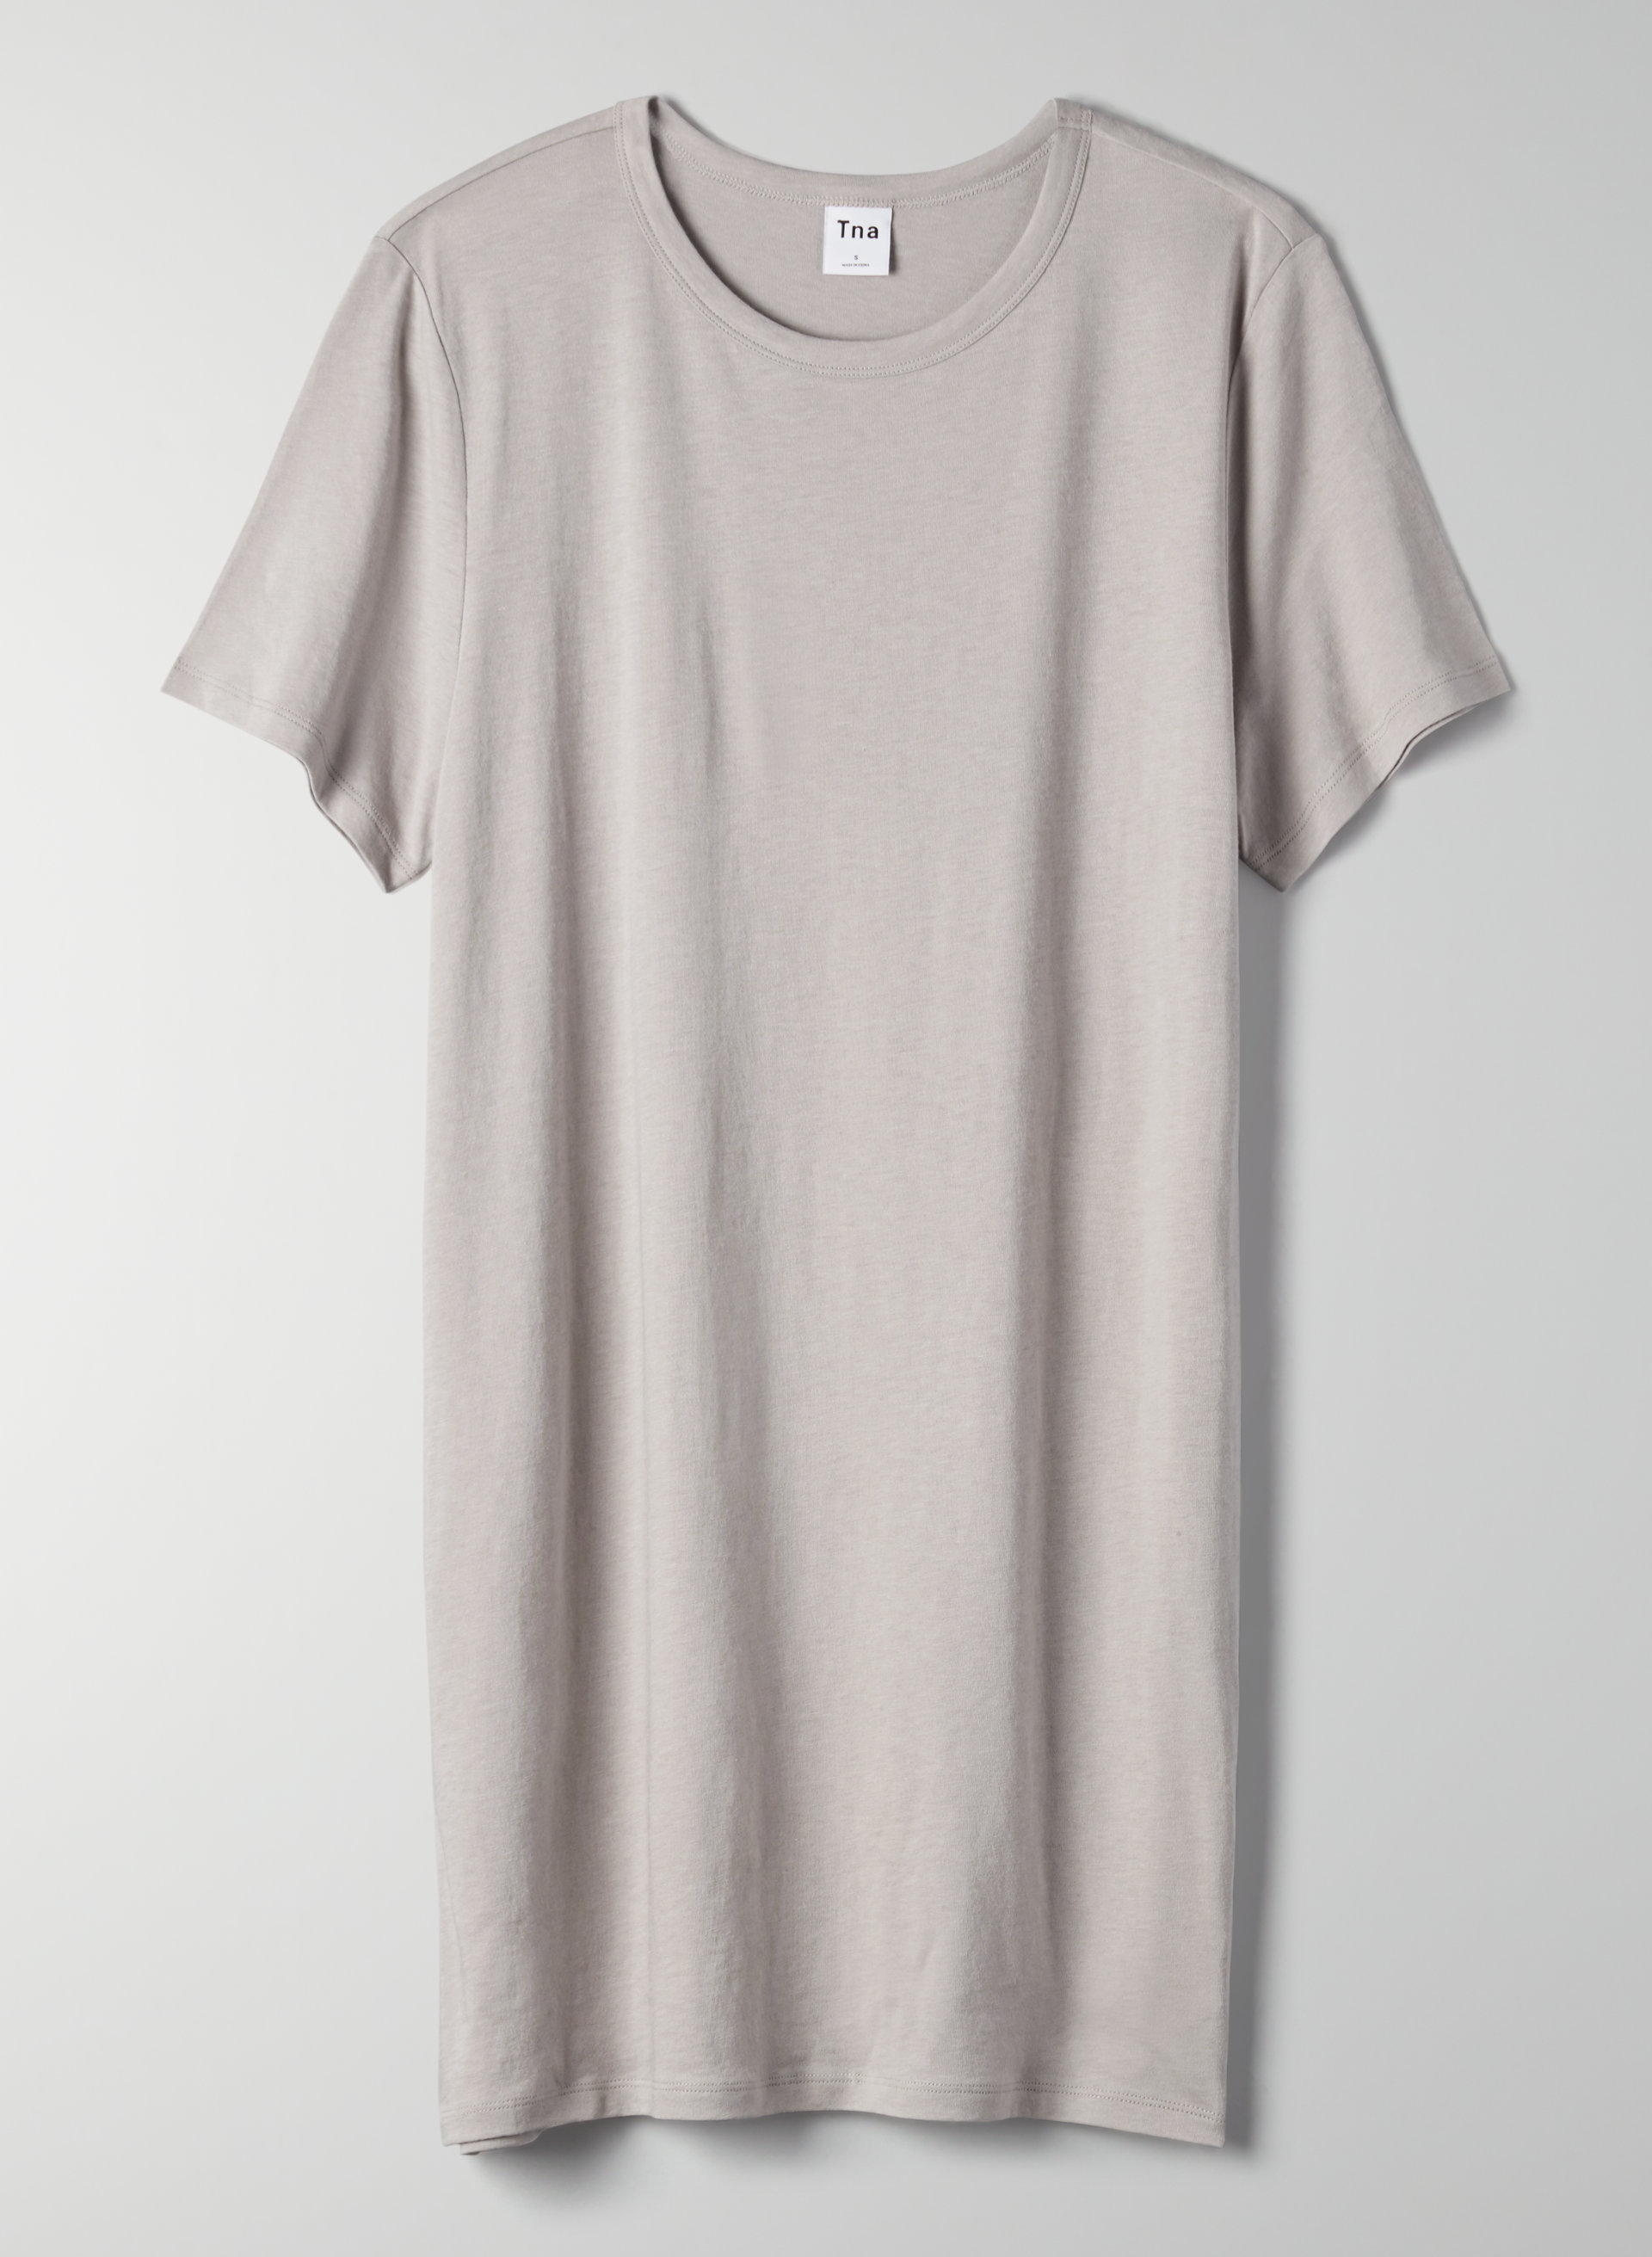 741ba8fdd8b3a TERCET DRESS - Jersey T-shirt dress